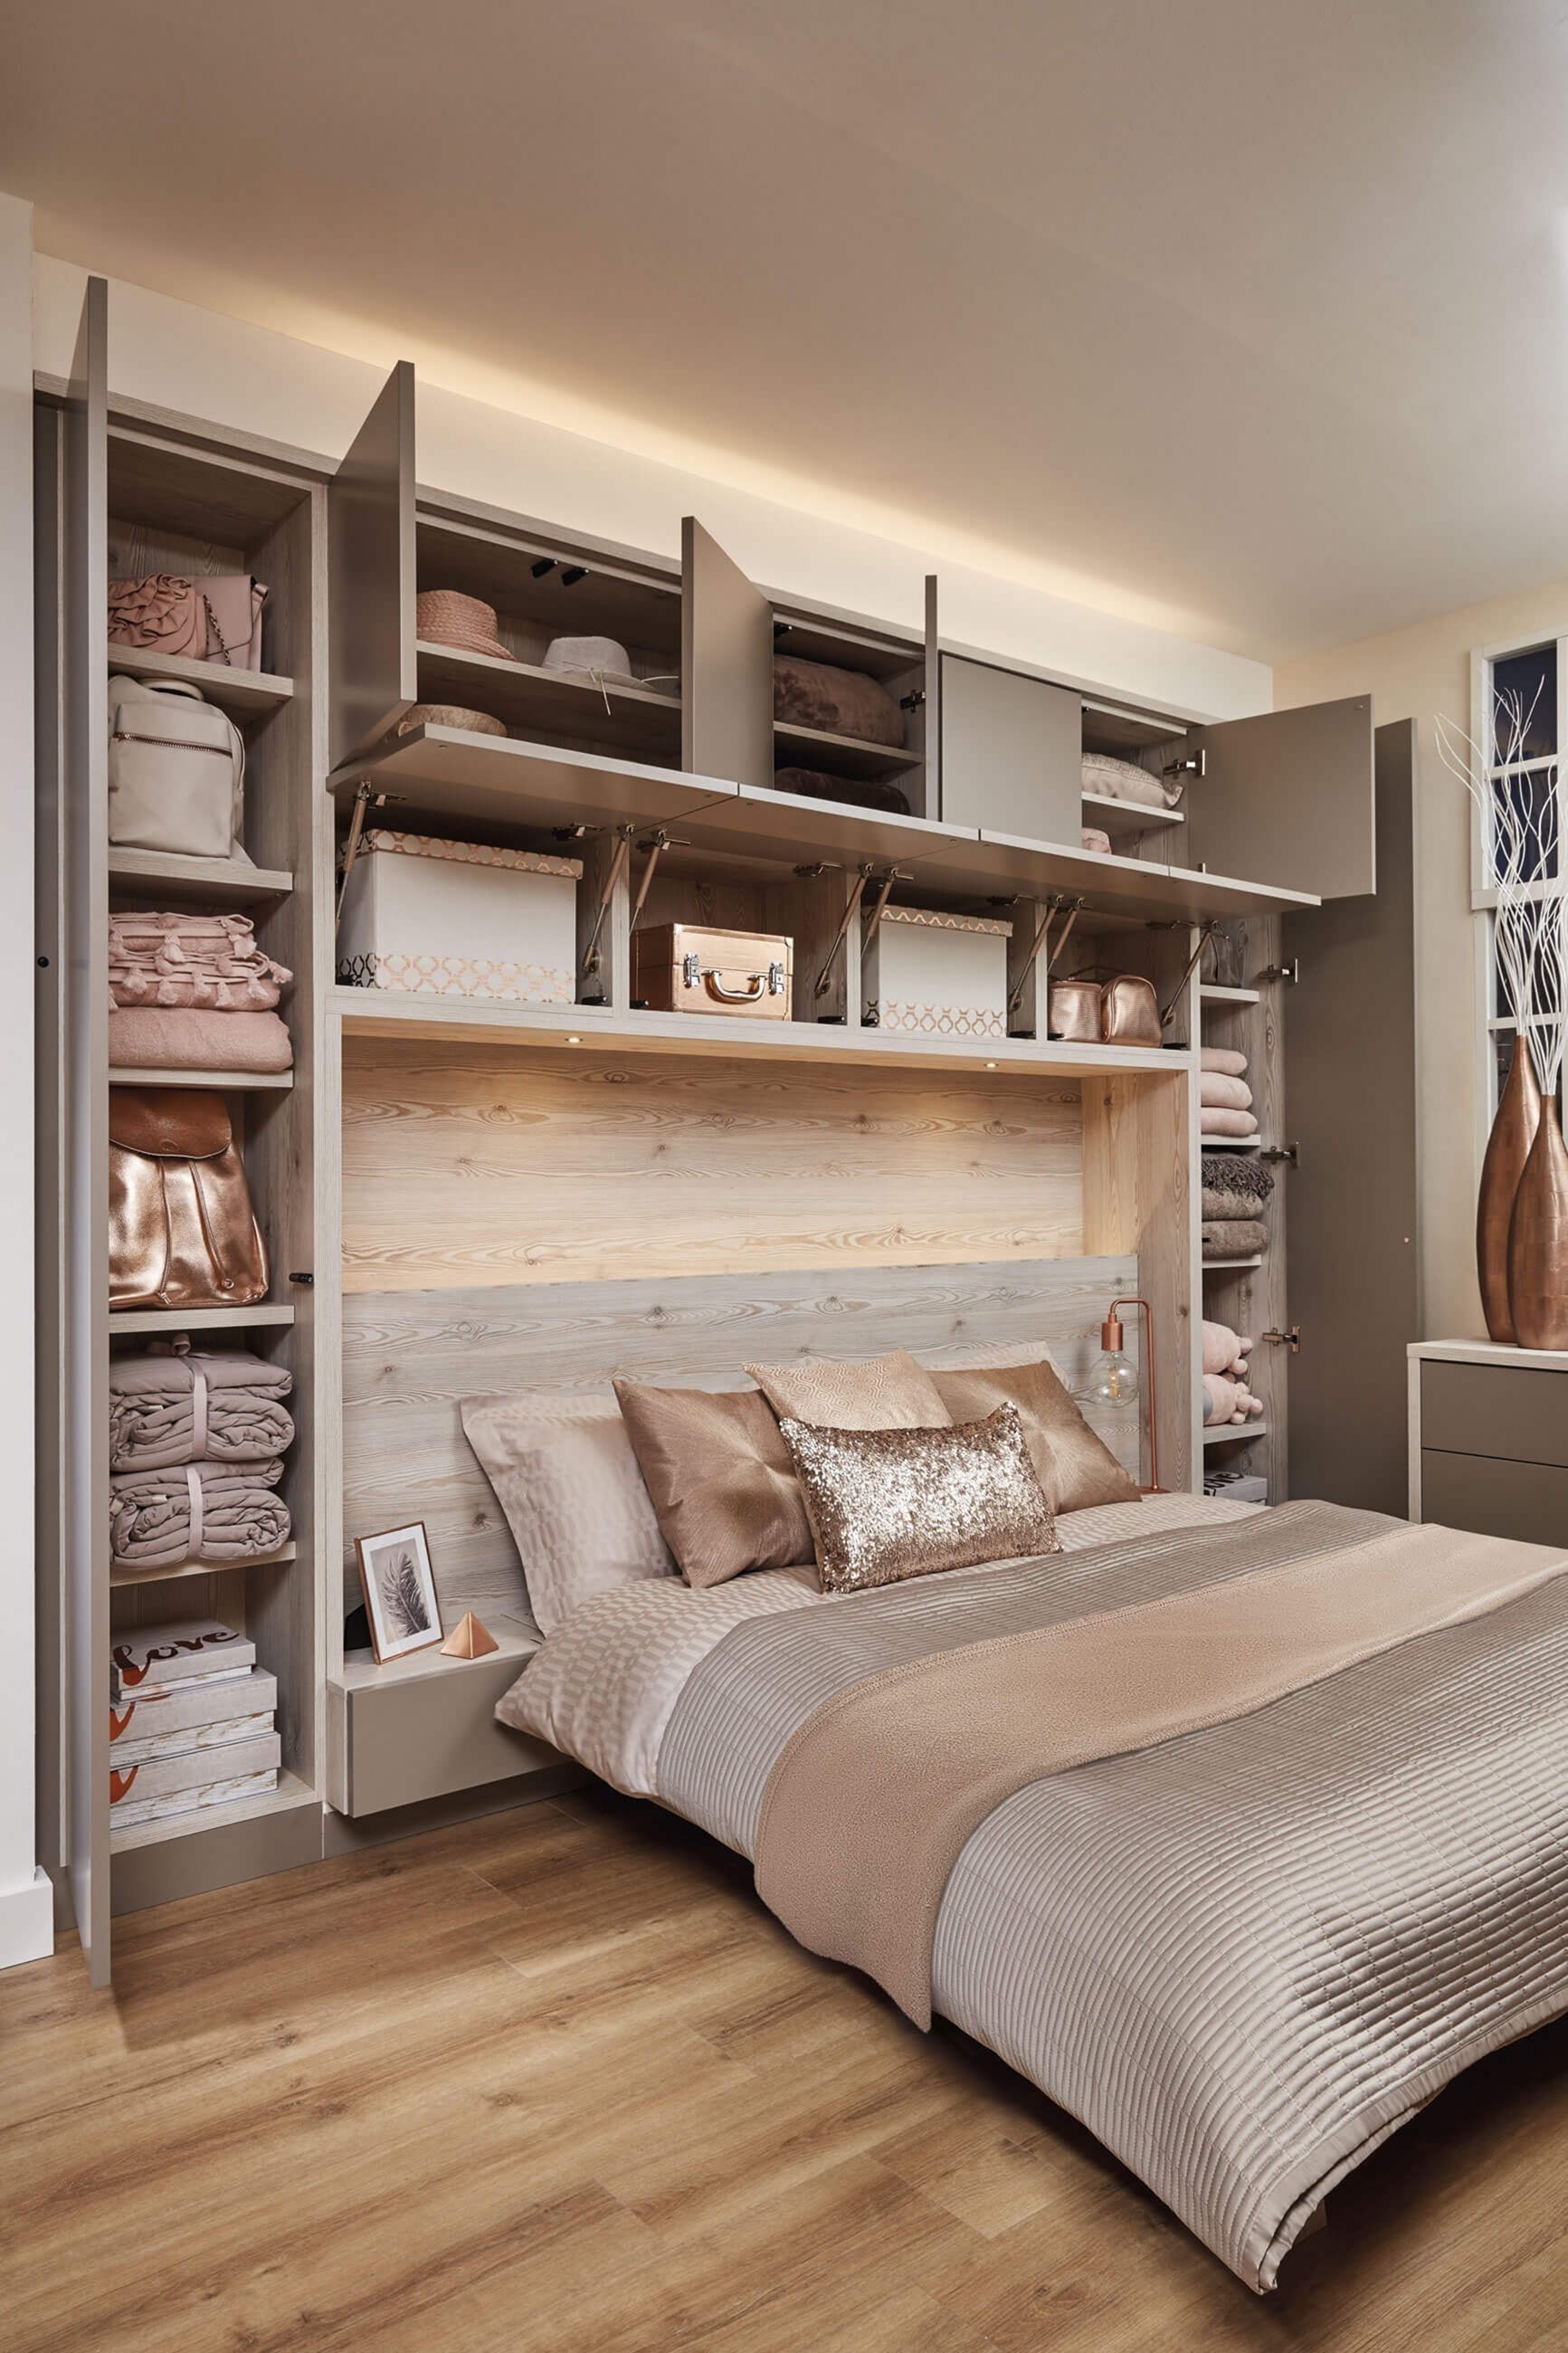 49 Incredible Bedroom Design Ideas You Will Love Asap In 2020 Fitted Bedroom Furniture Narrow Bedroom Fitted Bedrooms Bedroom decor essential ideas